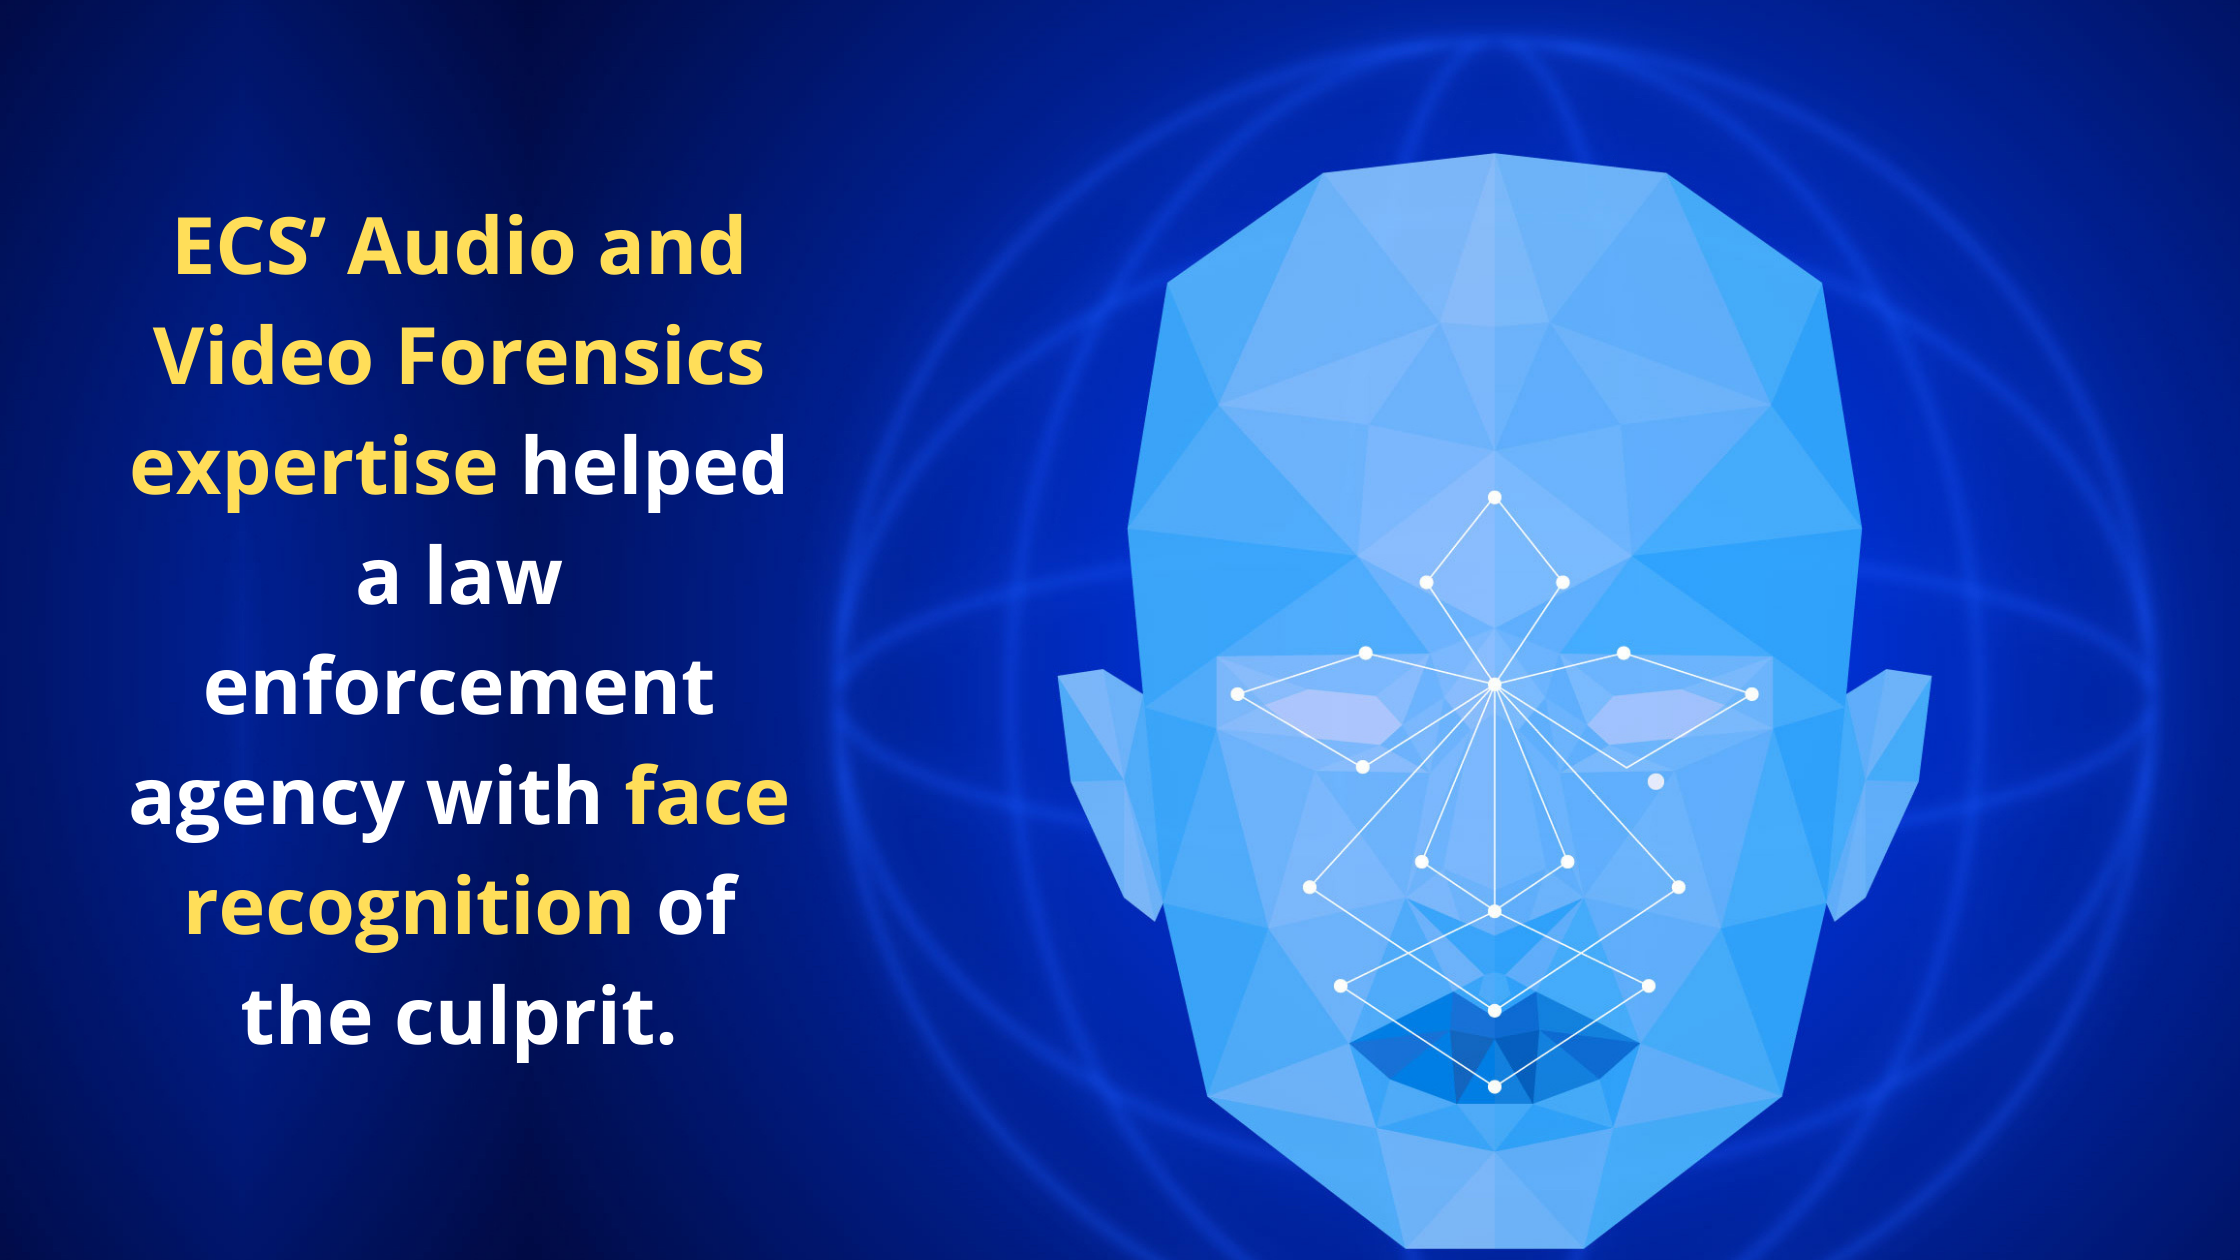 ECS' audio and video forensics expertise helped a law enforcement agency with face recognition of the culprit.